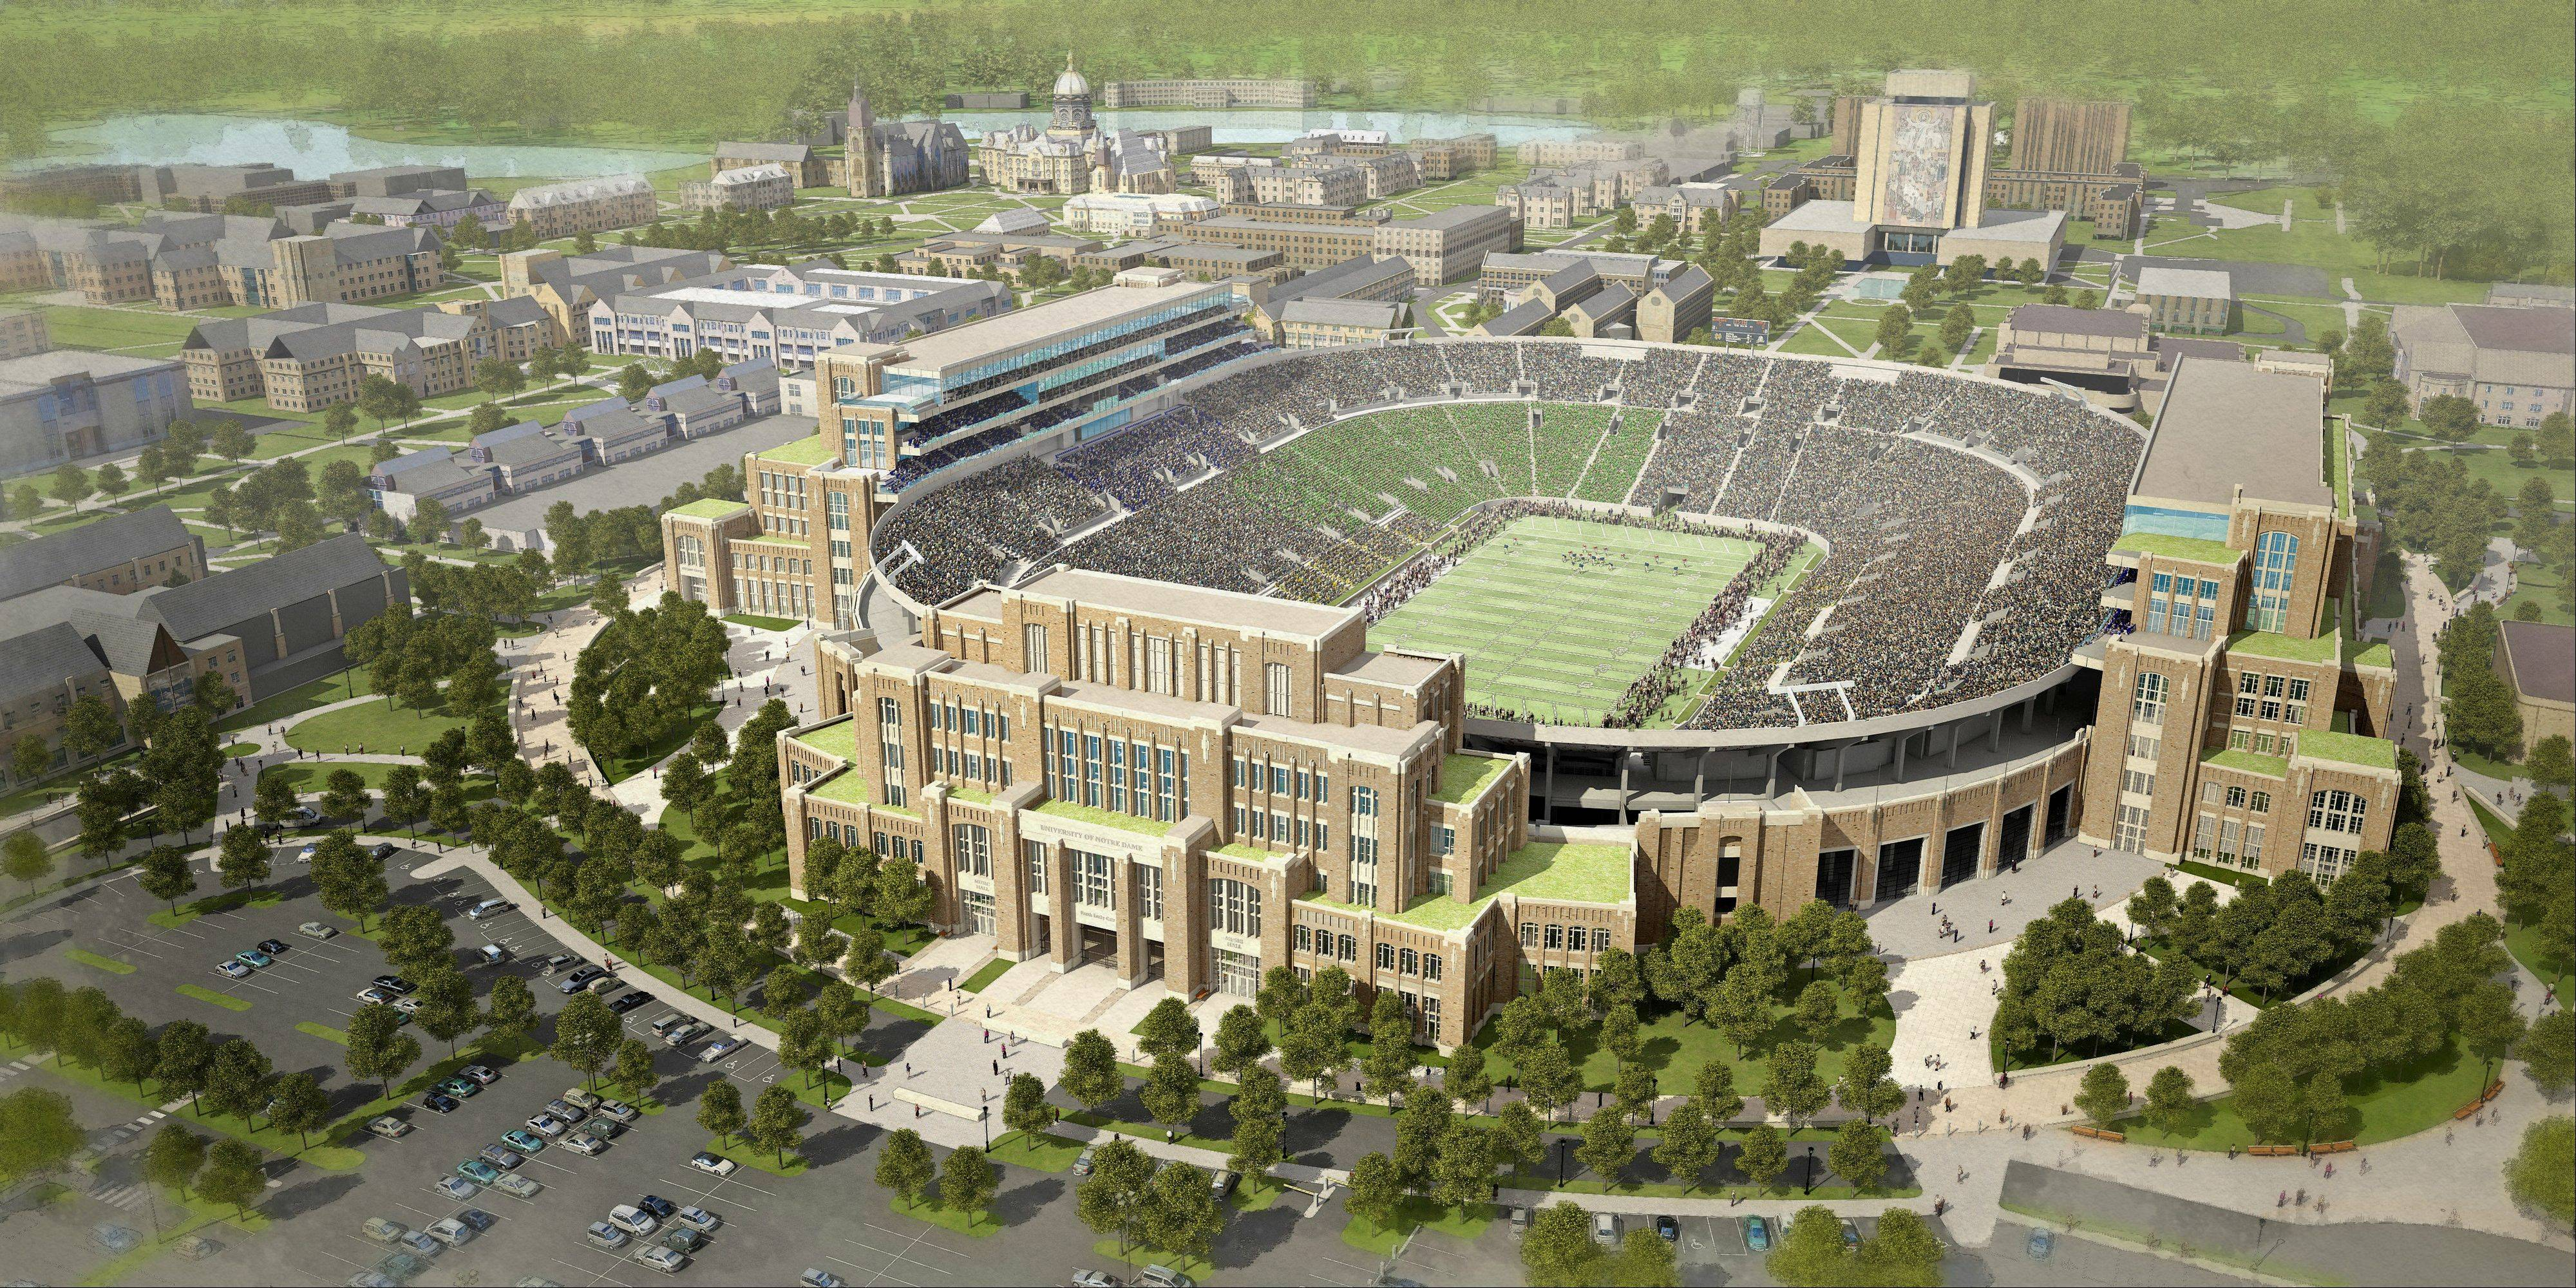 In this artists rendering provided by The University of Notre Dame is the school's new football stadium. Notre Dame announced plans Wednesday, Jan. 29, 2014 to expand the schoolís 84-year-old football stadium, adding up to 4,000 premium seats and spending about $400 million to add buildings on three sides of the ìHouse that Rockne Built.î